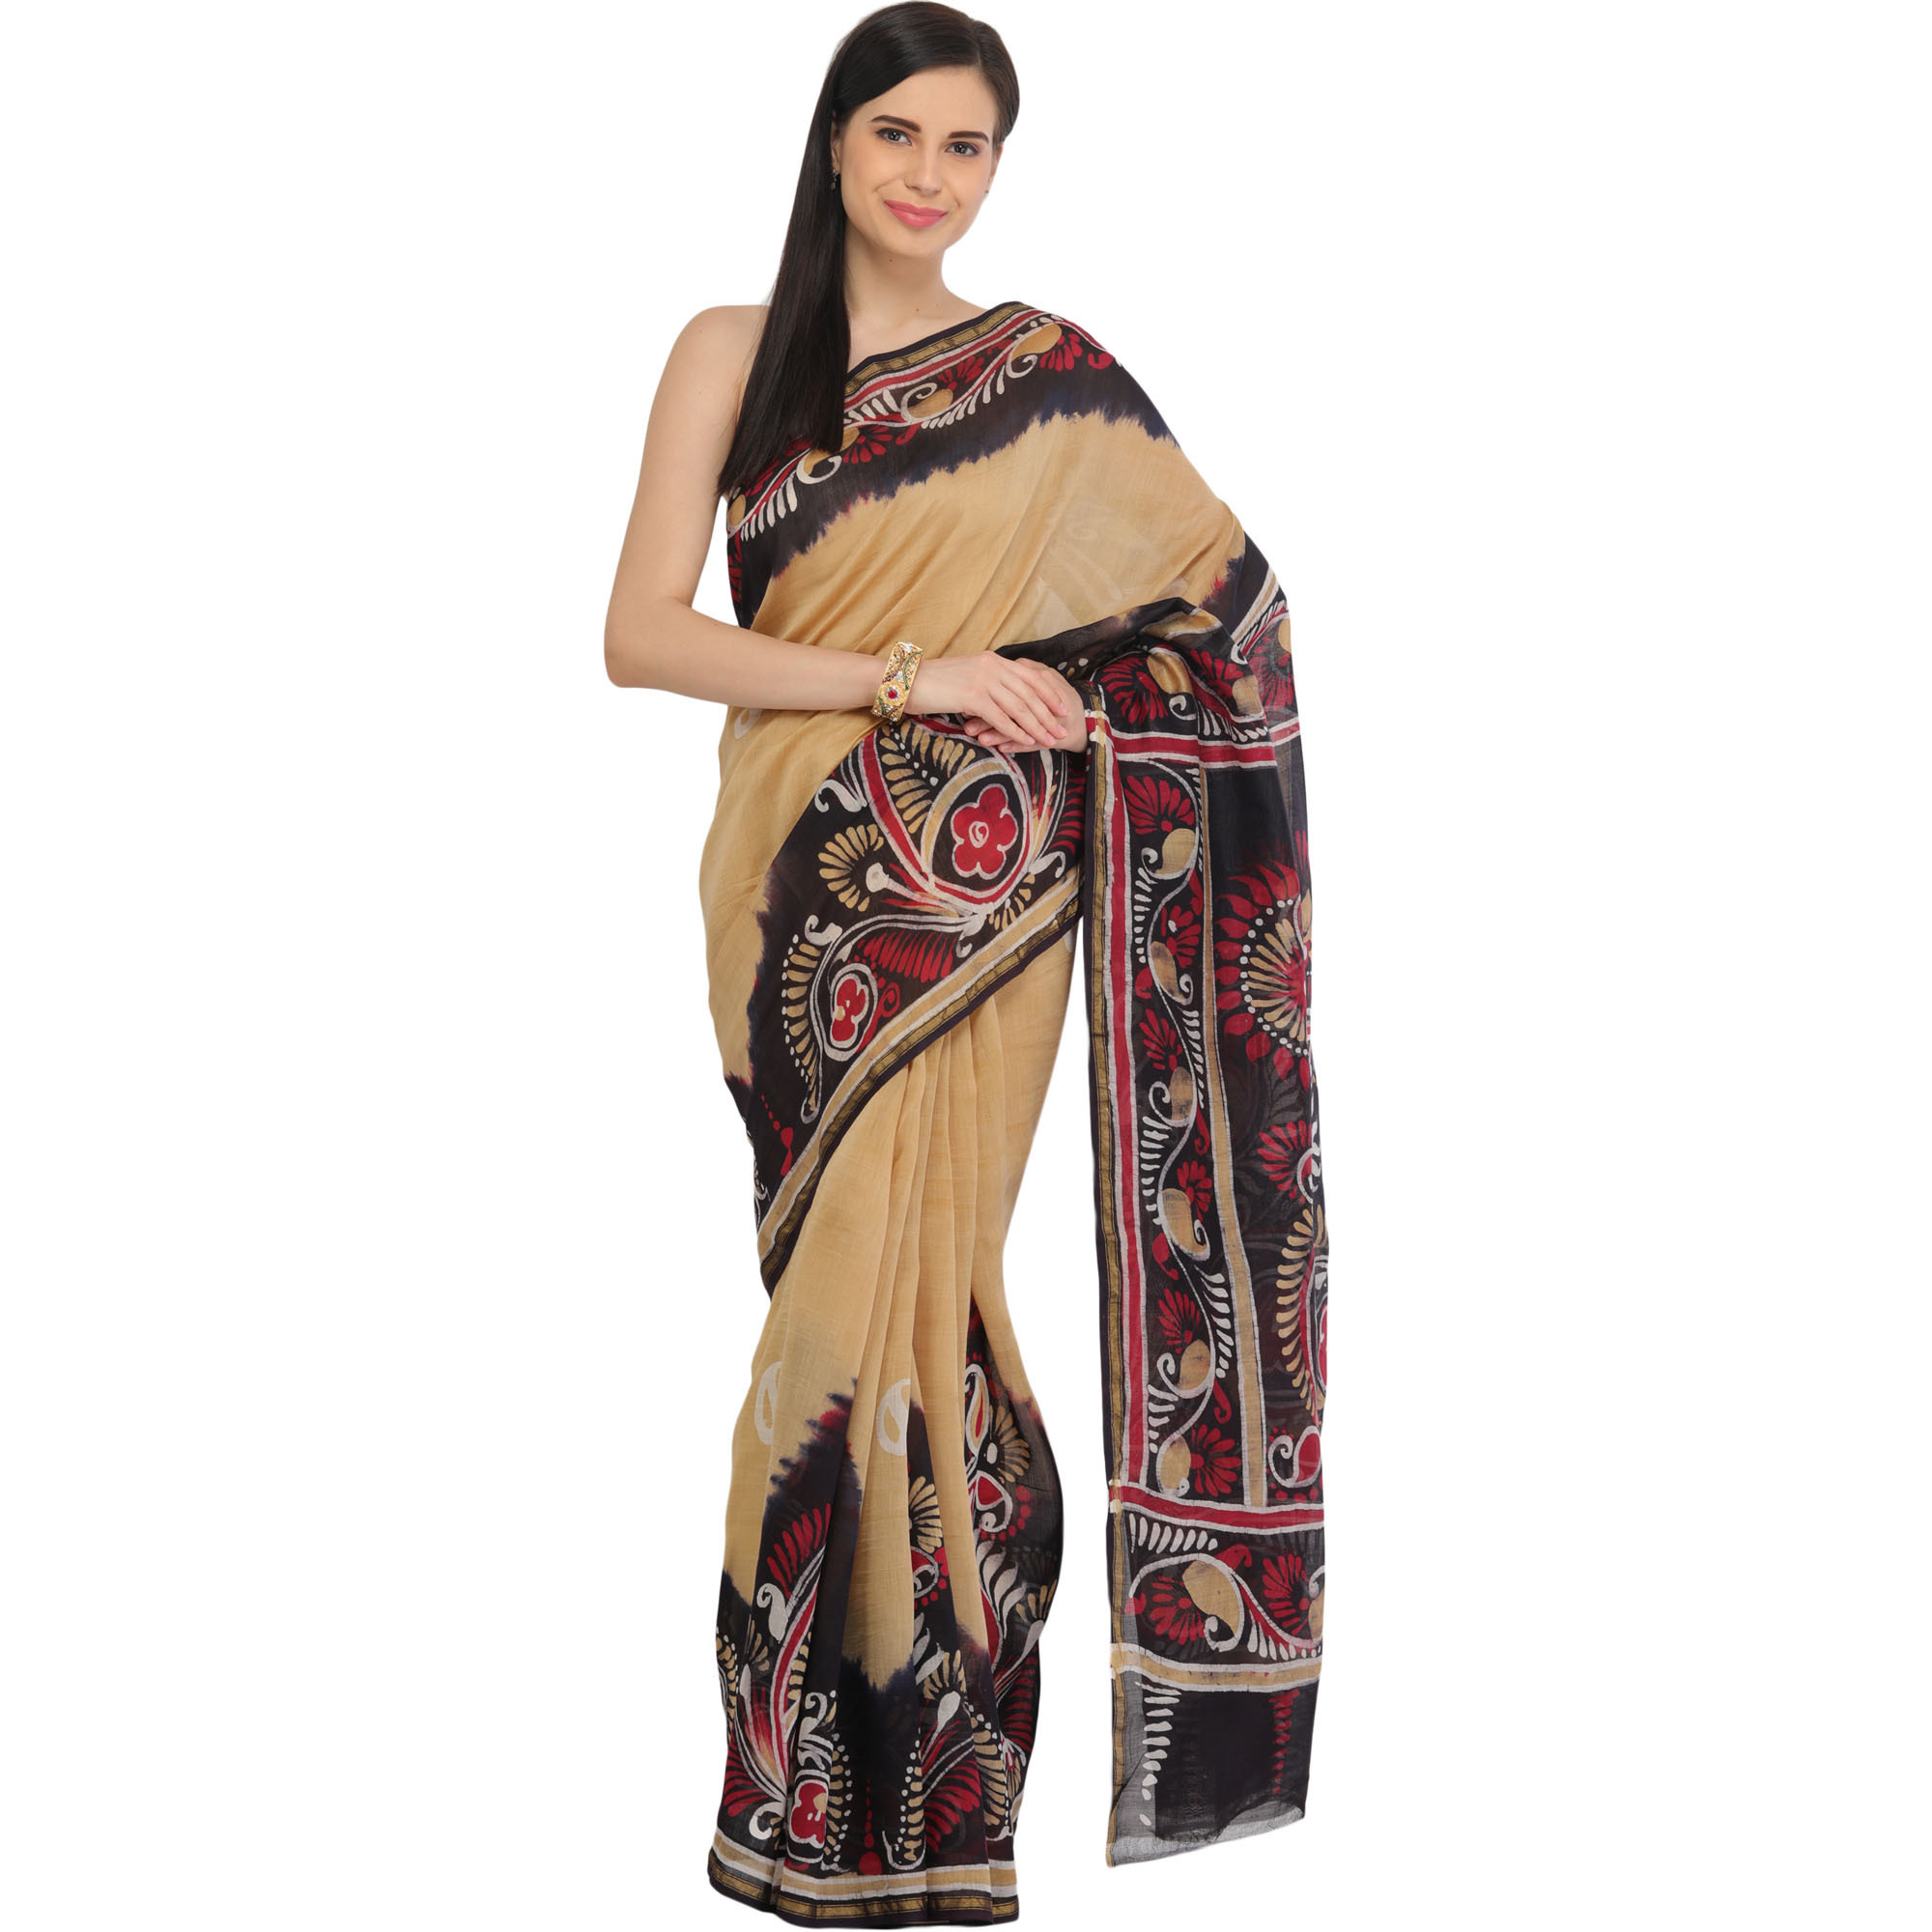 Italian-Straw and Black Batik Printed Sari from Madhya Pradesh with Paisleys on Border